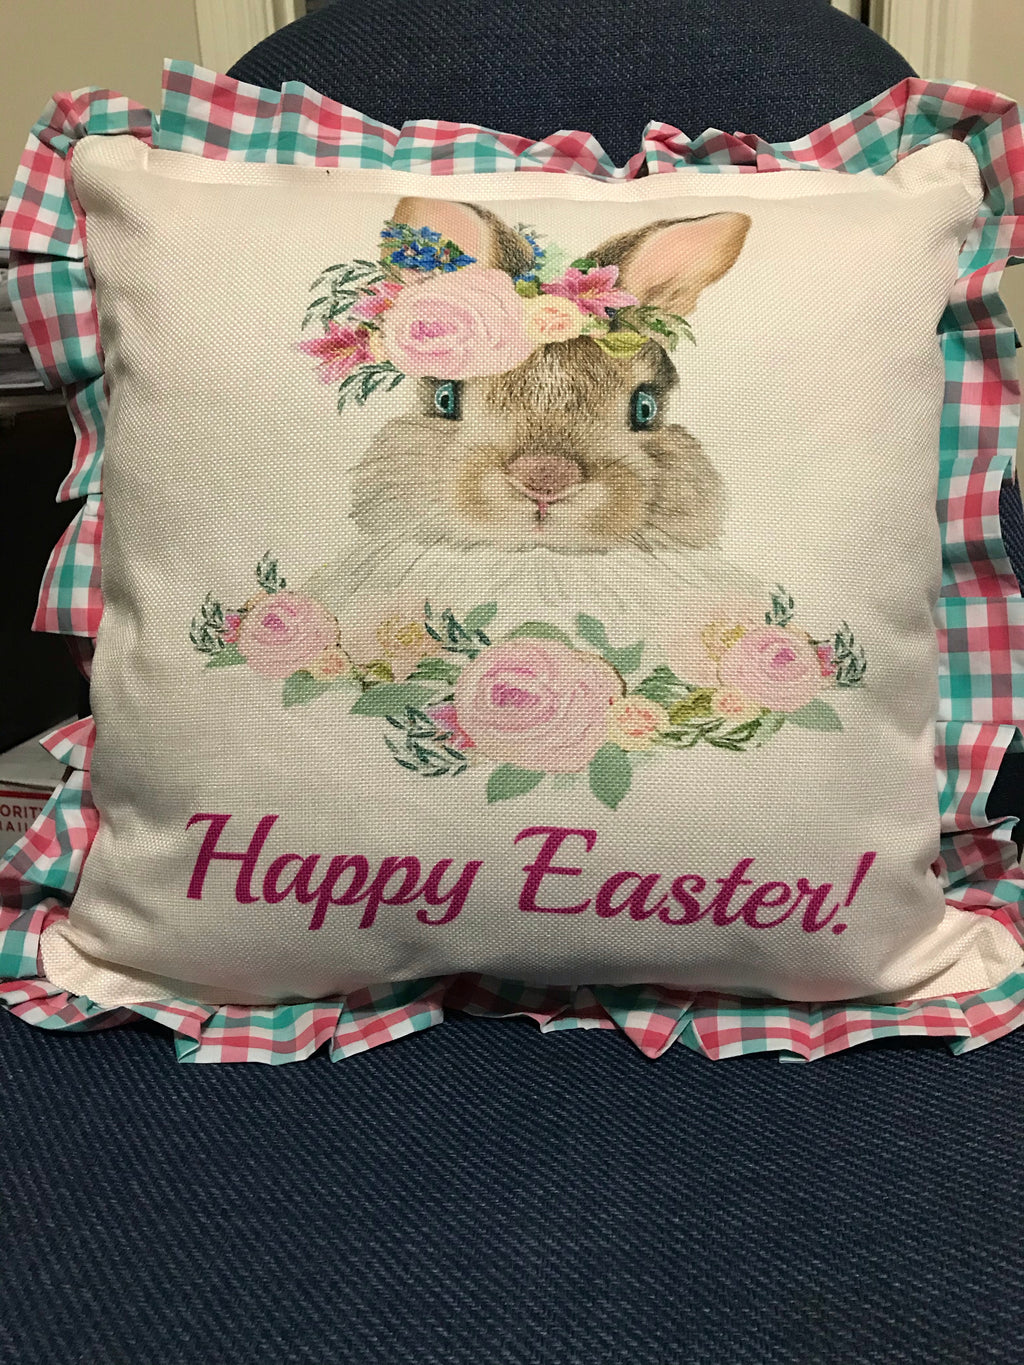 EASTER PLAID Pillow Covers PINK  AQUA